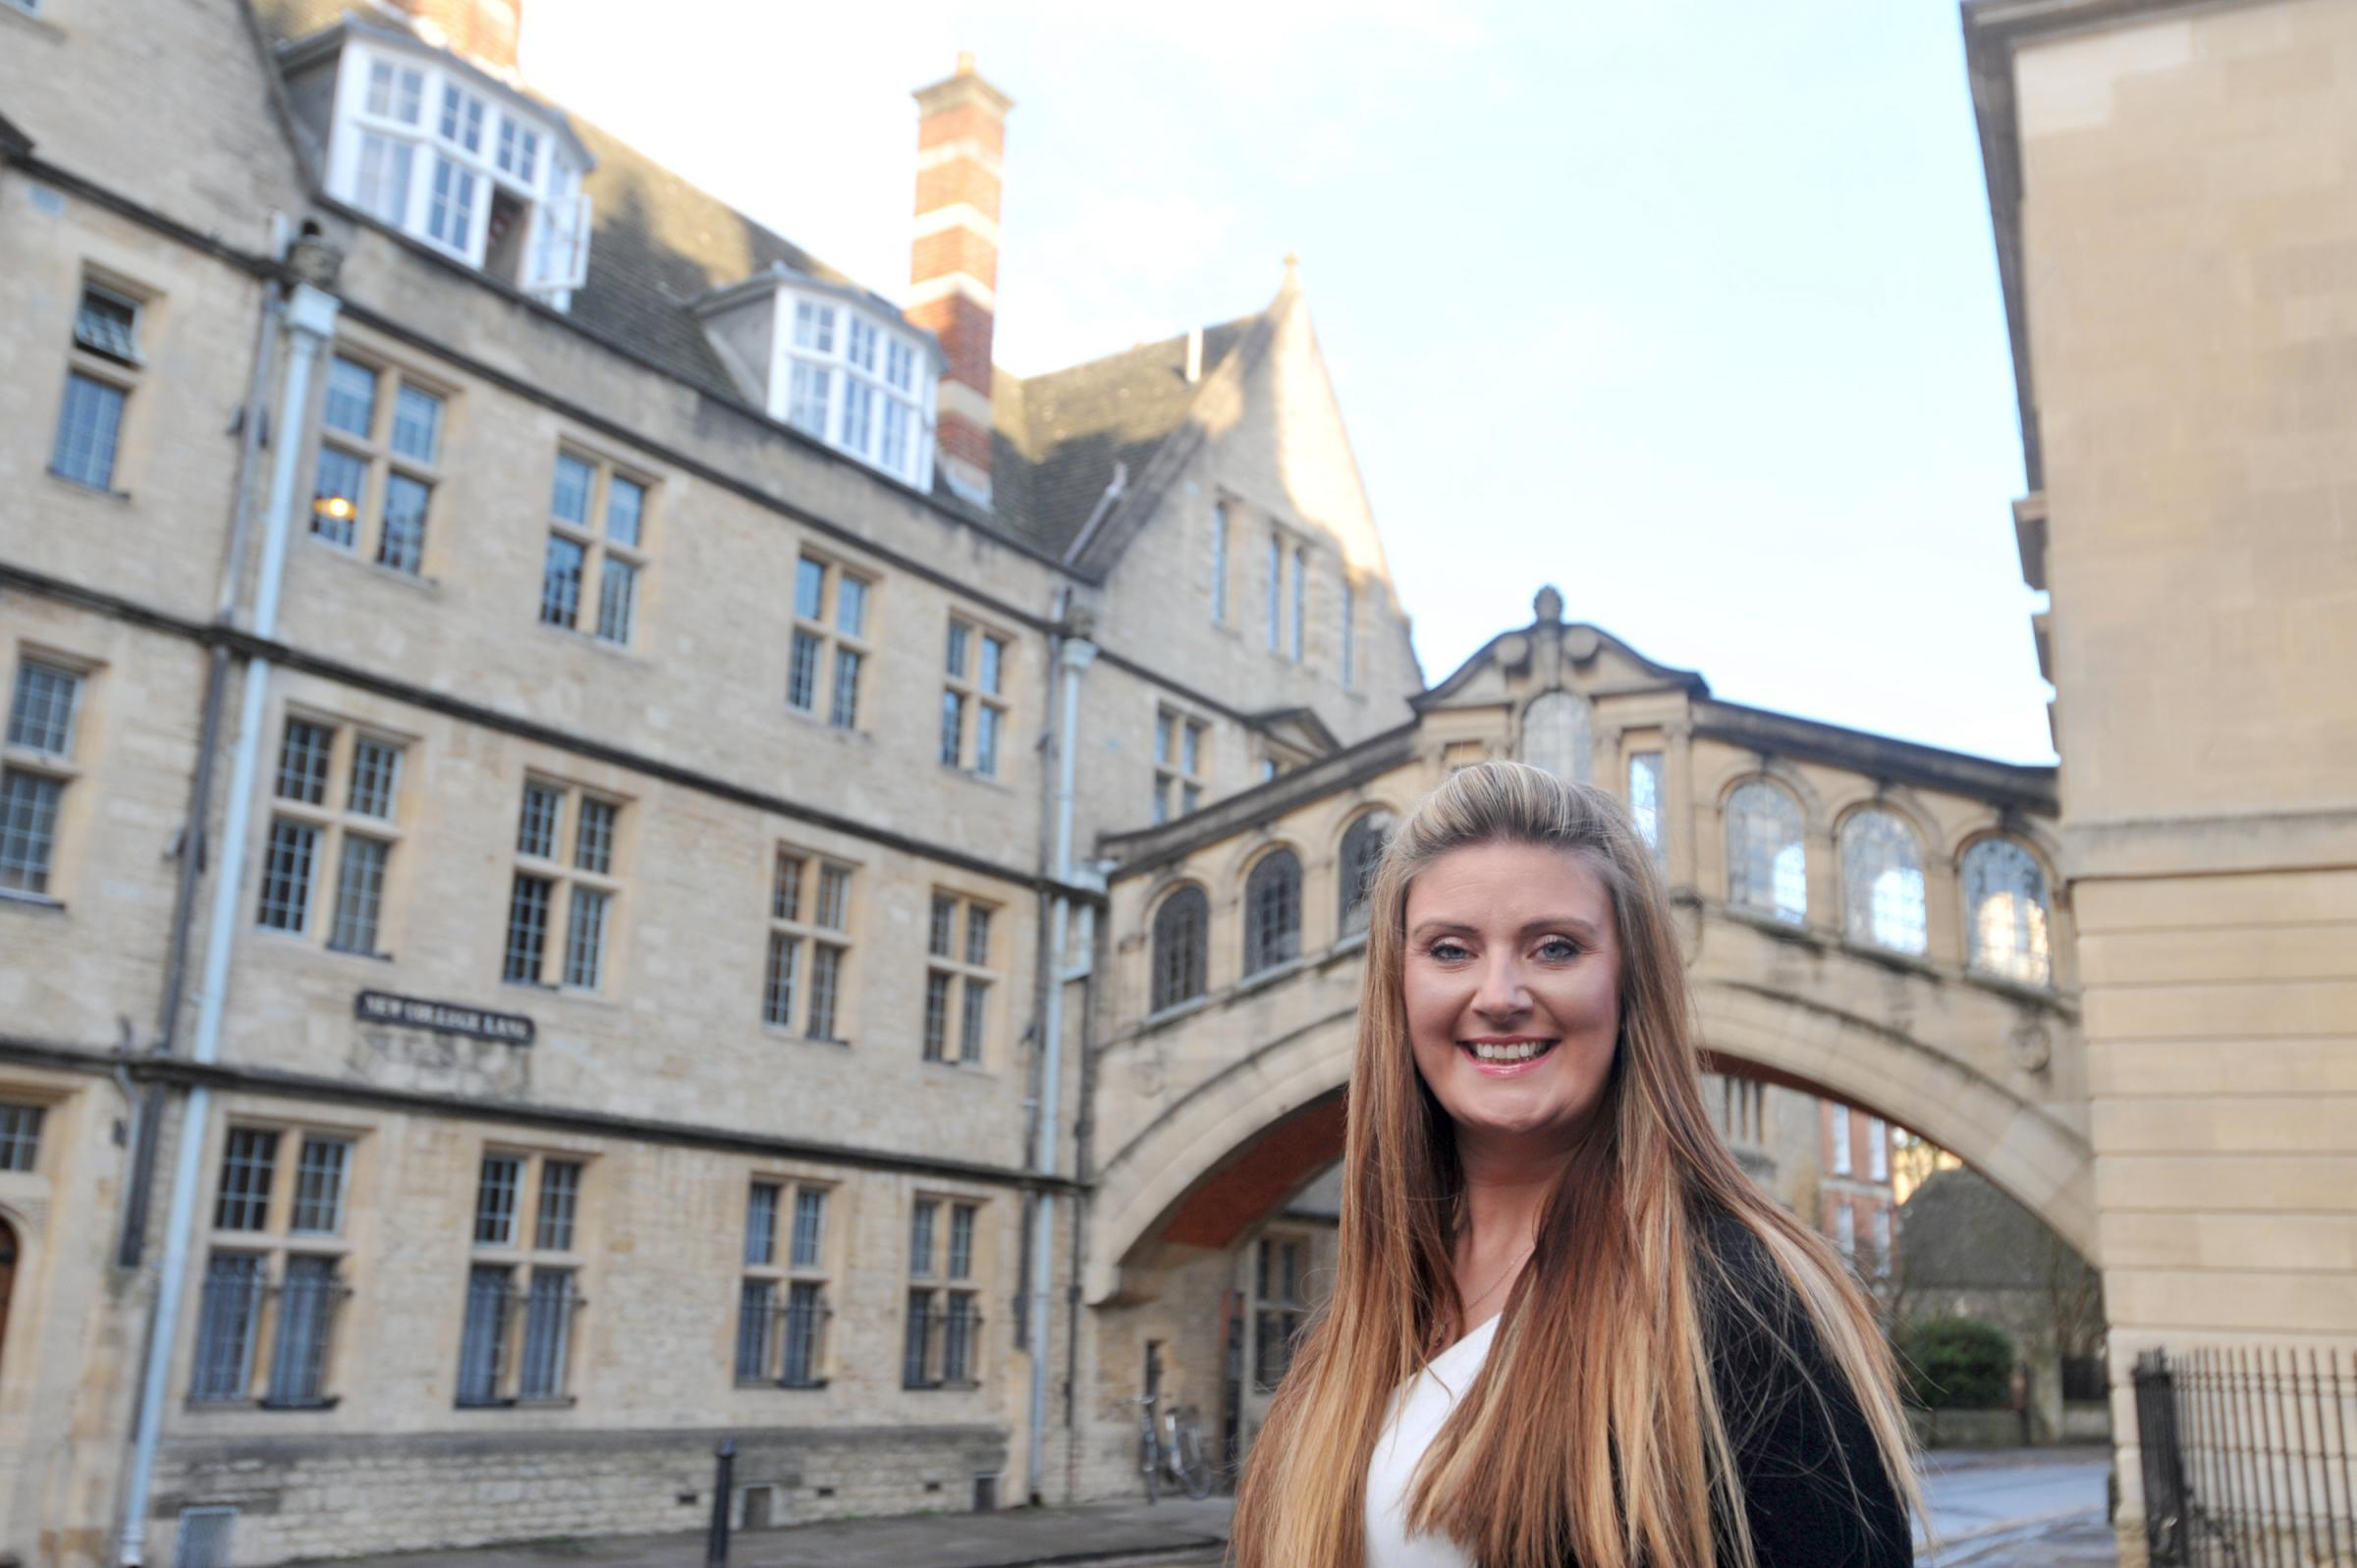 Hayley Beer-Gamage, chief executive of Experience Oxfordshire, by the Bridge of Sighs in Oxford